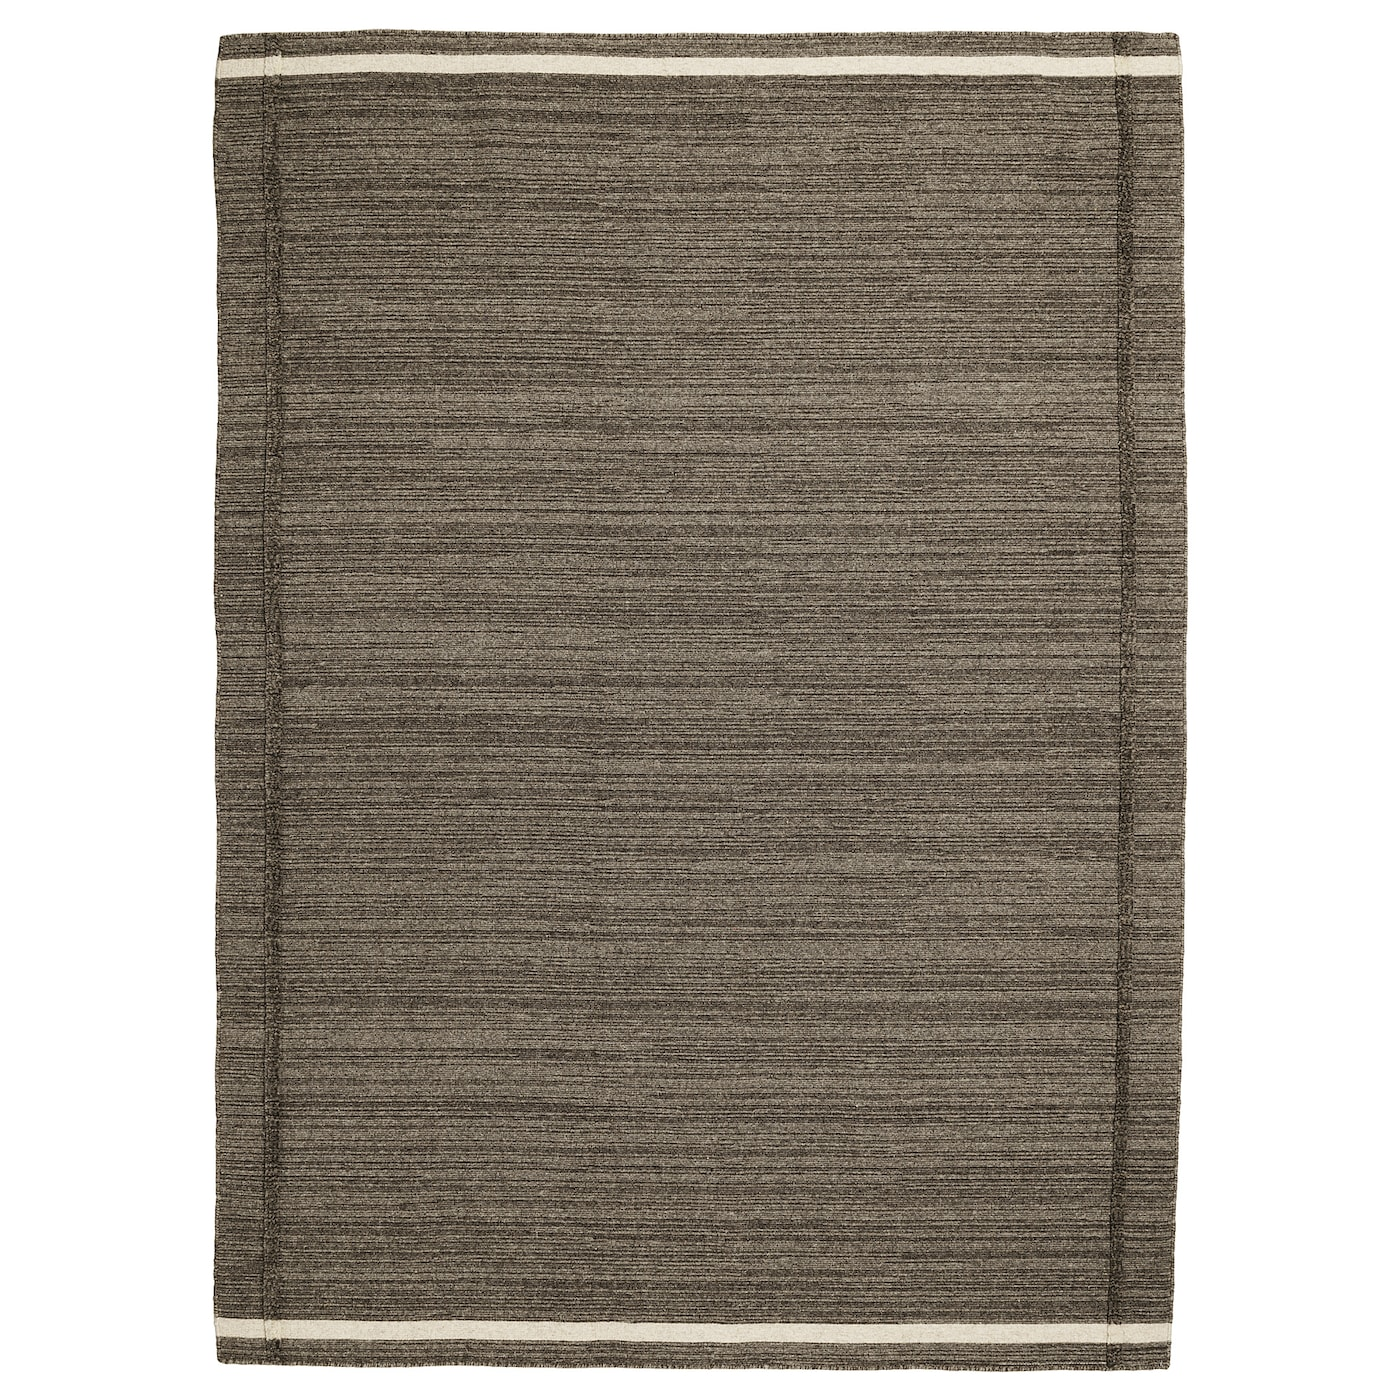 IKEA HÖJET rug, flatwoven Easy to vacuum thanks to its flat surface.